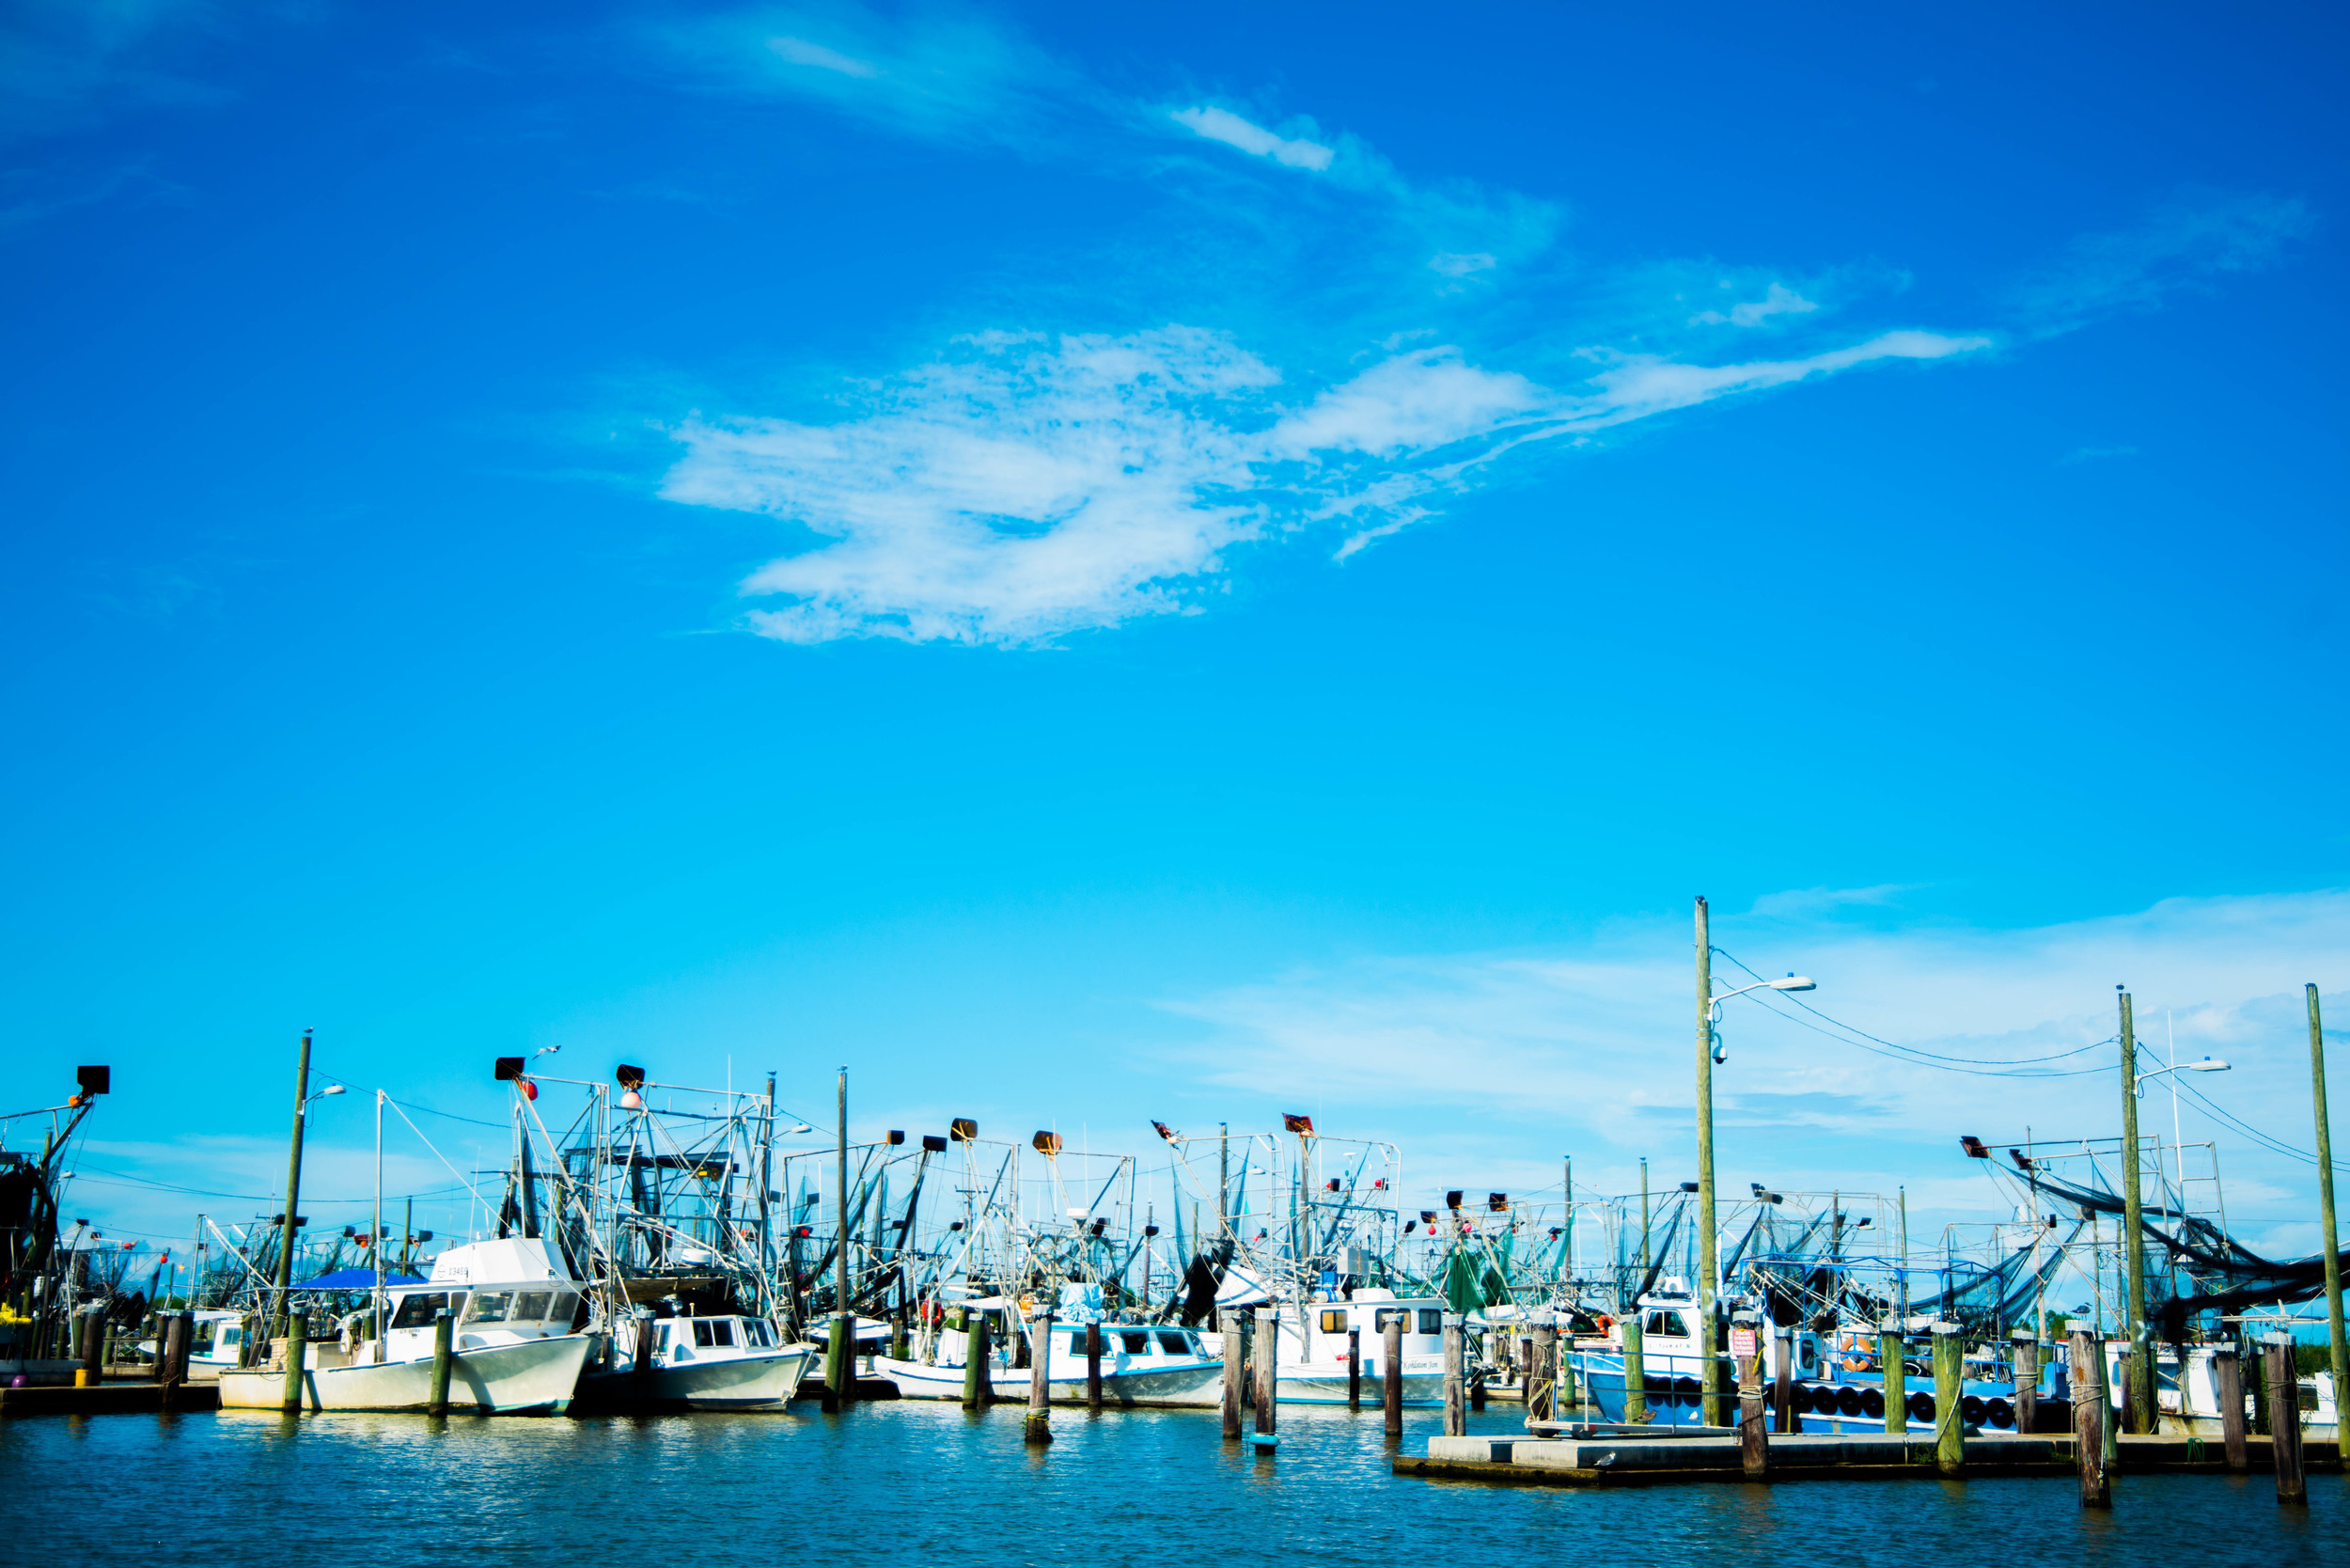 Venice, Louisiana, was the southernmost town along the Mississippi river, and our final river town of the journey. This relaxed fishing town played every bit the part of the southern 'not hurrying for anyone' attitude we had expected.